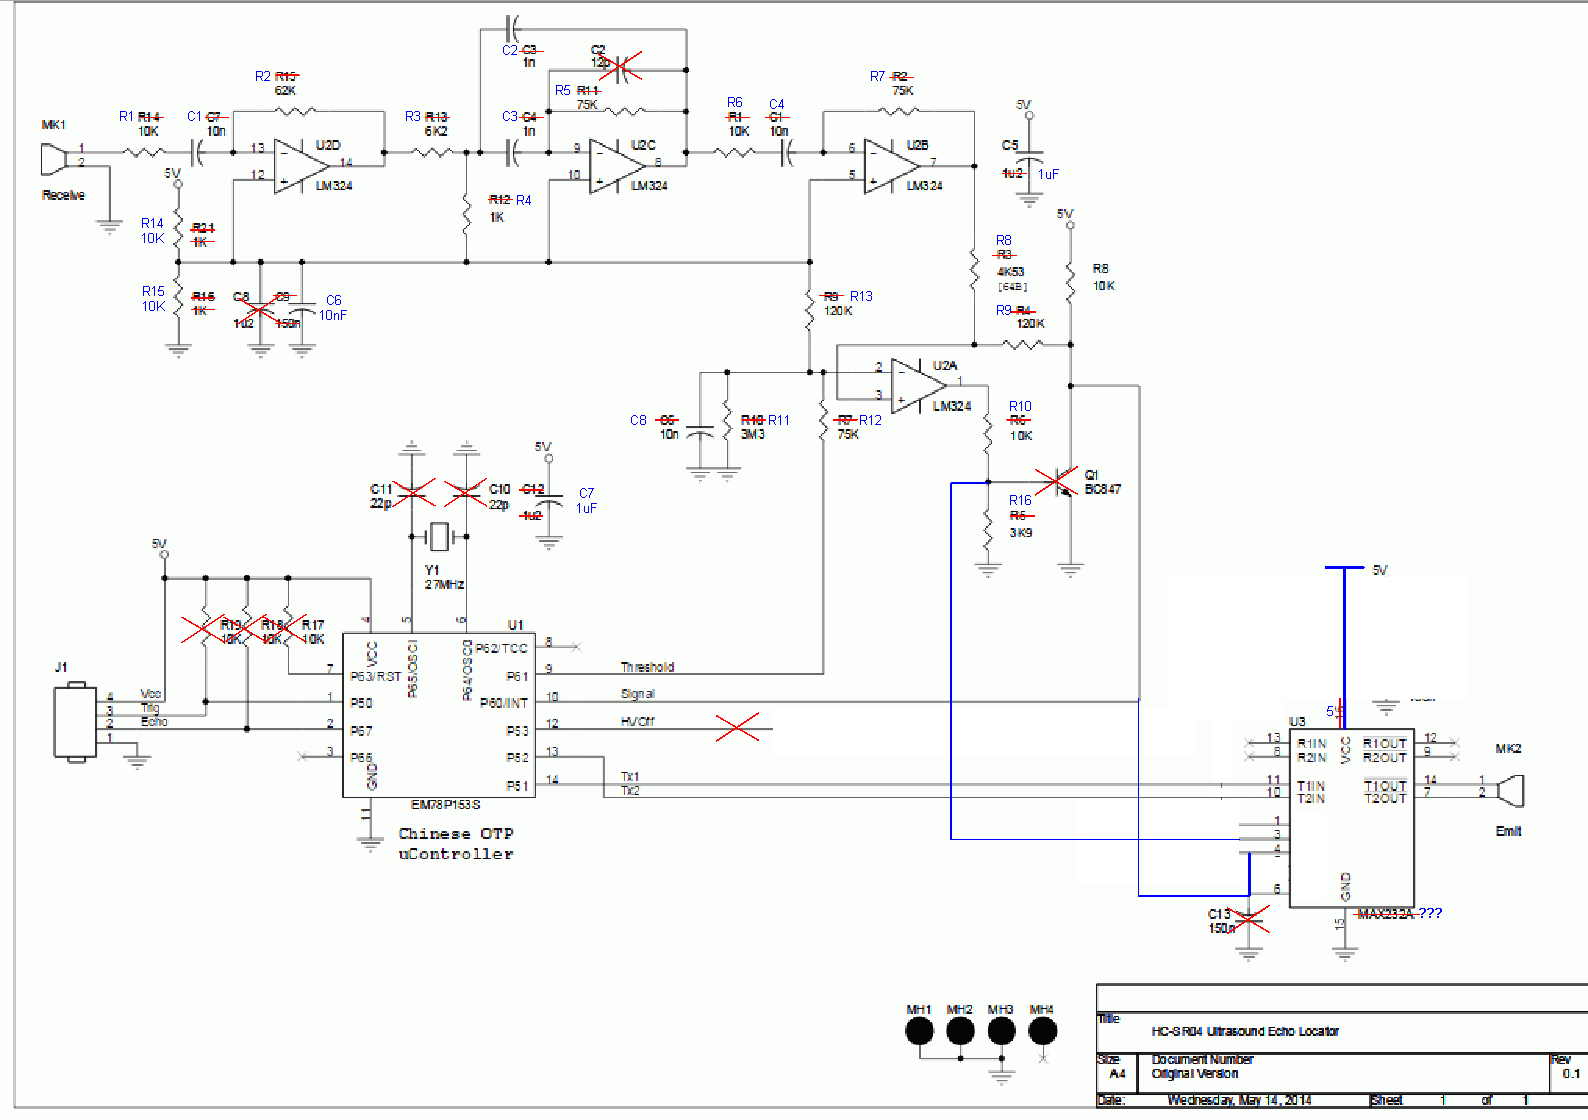 Motion Sensor Wiring Diagram Manual Of 2 Way Switch Hc Sr04 Circuit Schematic And Schematics